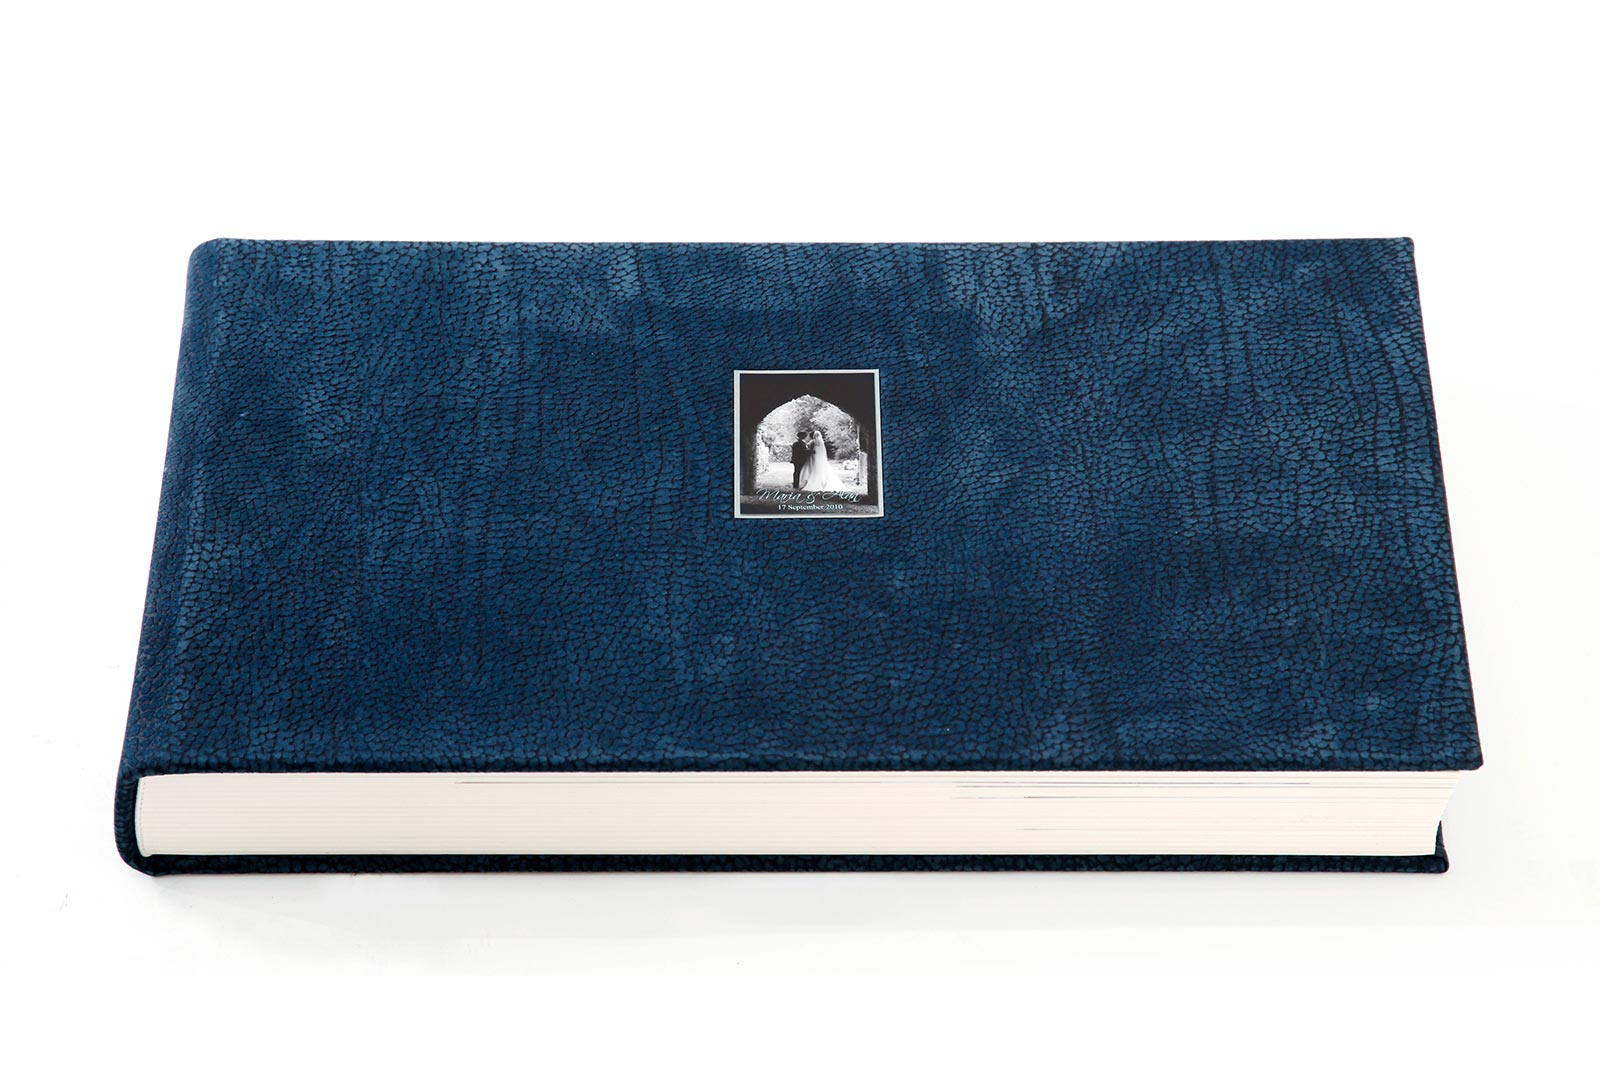 A large 10x18 inch Queensberry Duo album with a cover in Blueberry Contemporty genuine leather and square photograph